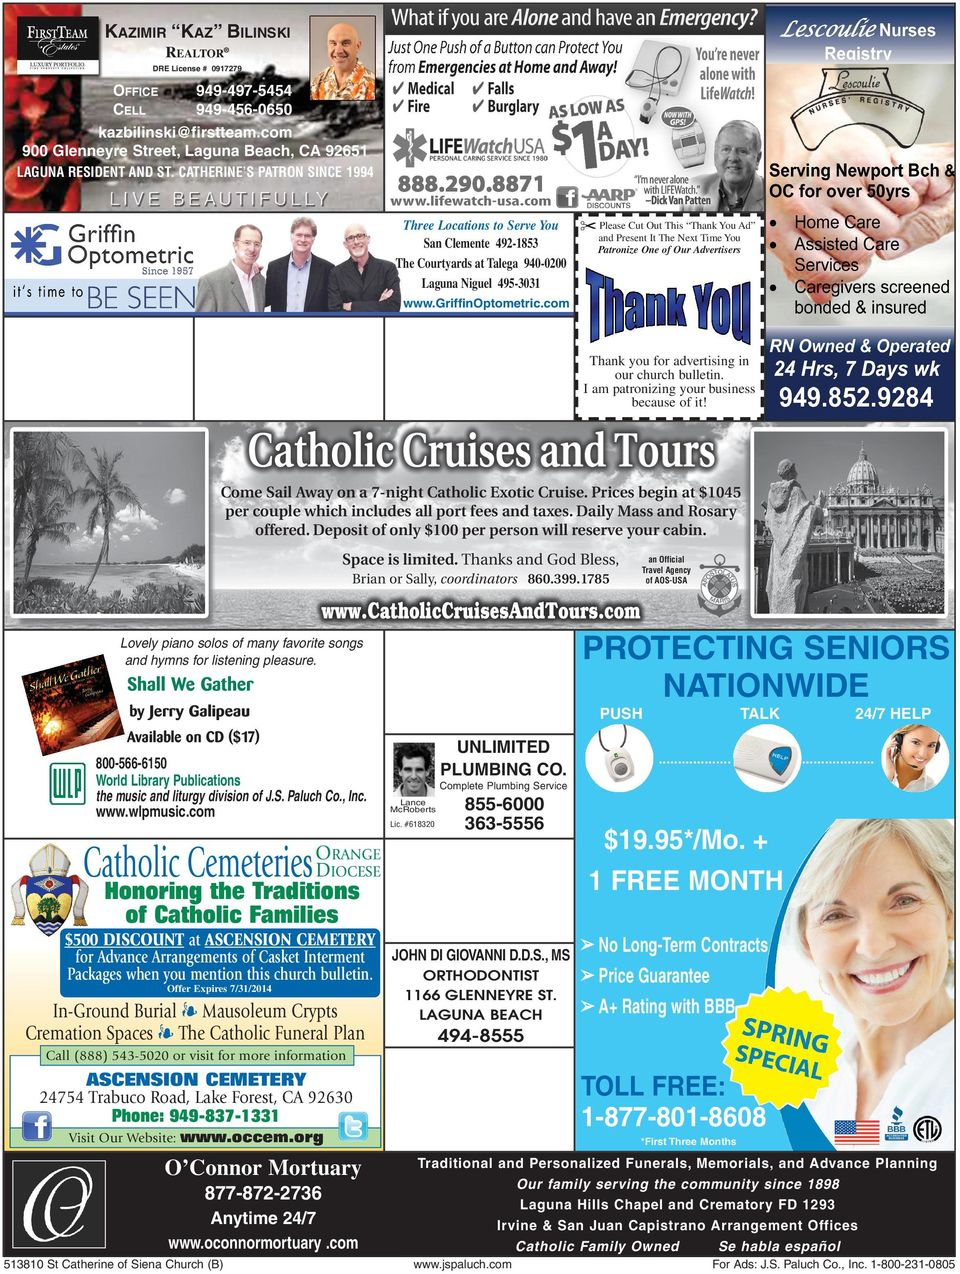 You Patronize One of Our Advertisers www.griffinoptometric.com Thank you for advertising in our church bulletin. I am patronizing your business because of it!